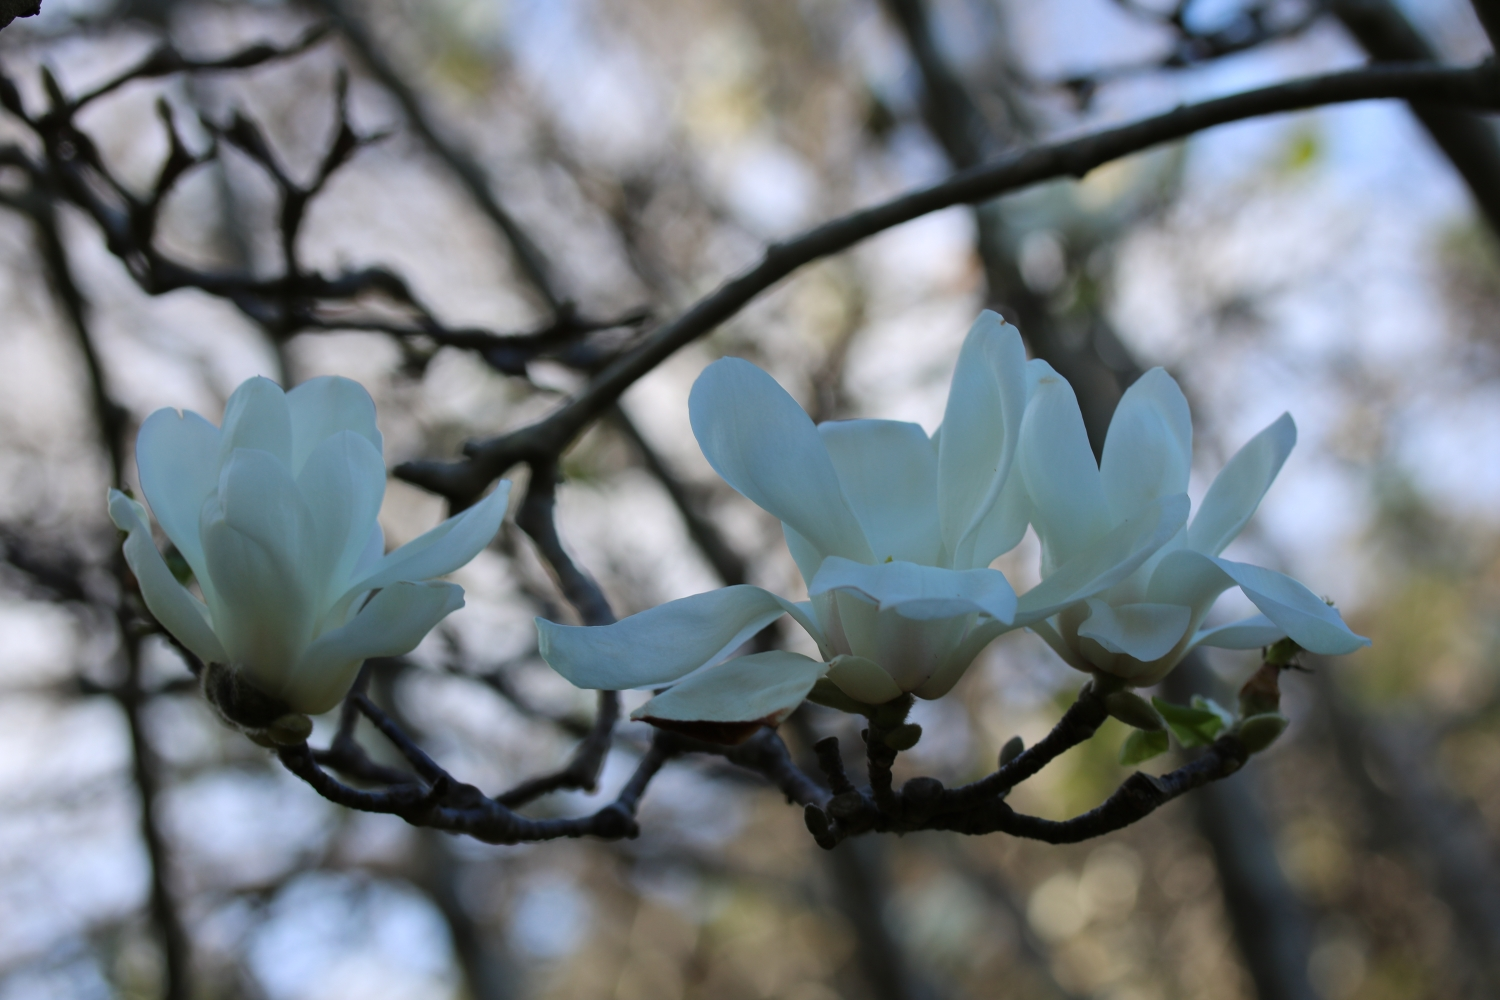 A trio of blooms on the Magnolia denudata at Vaucluse House